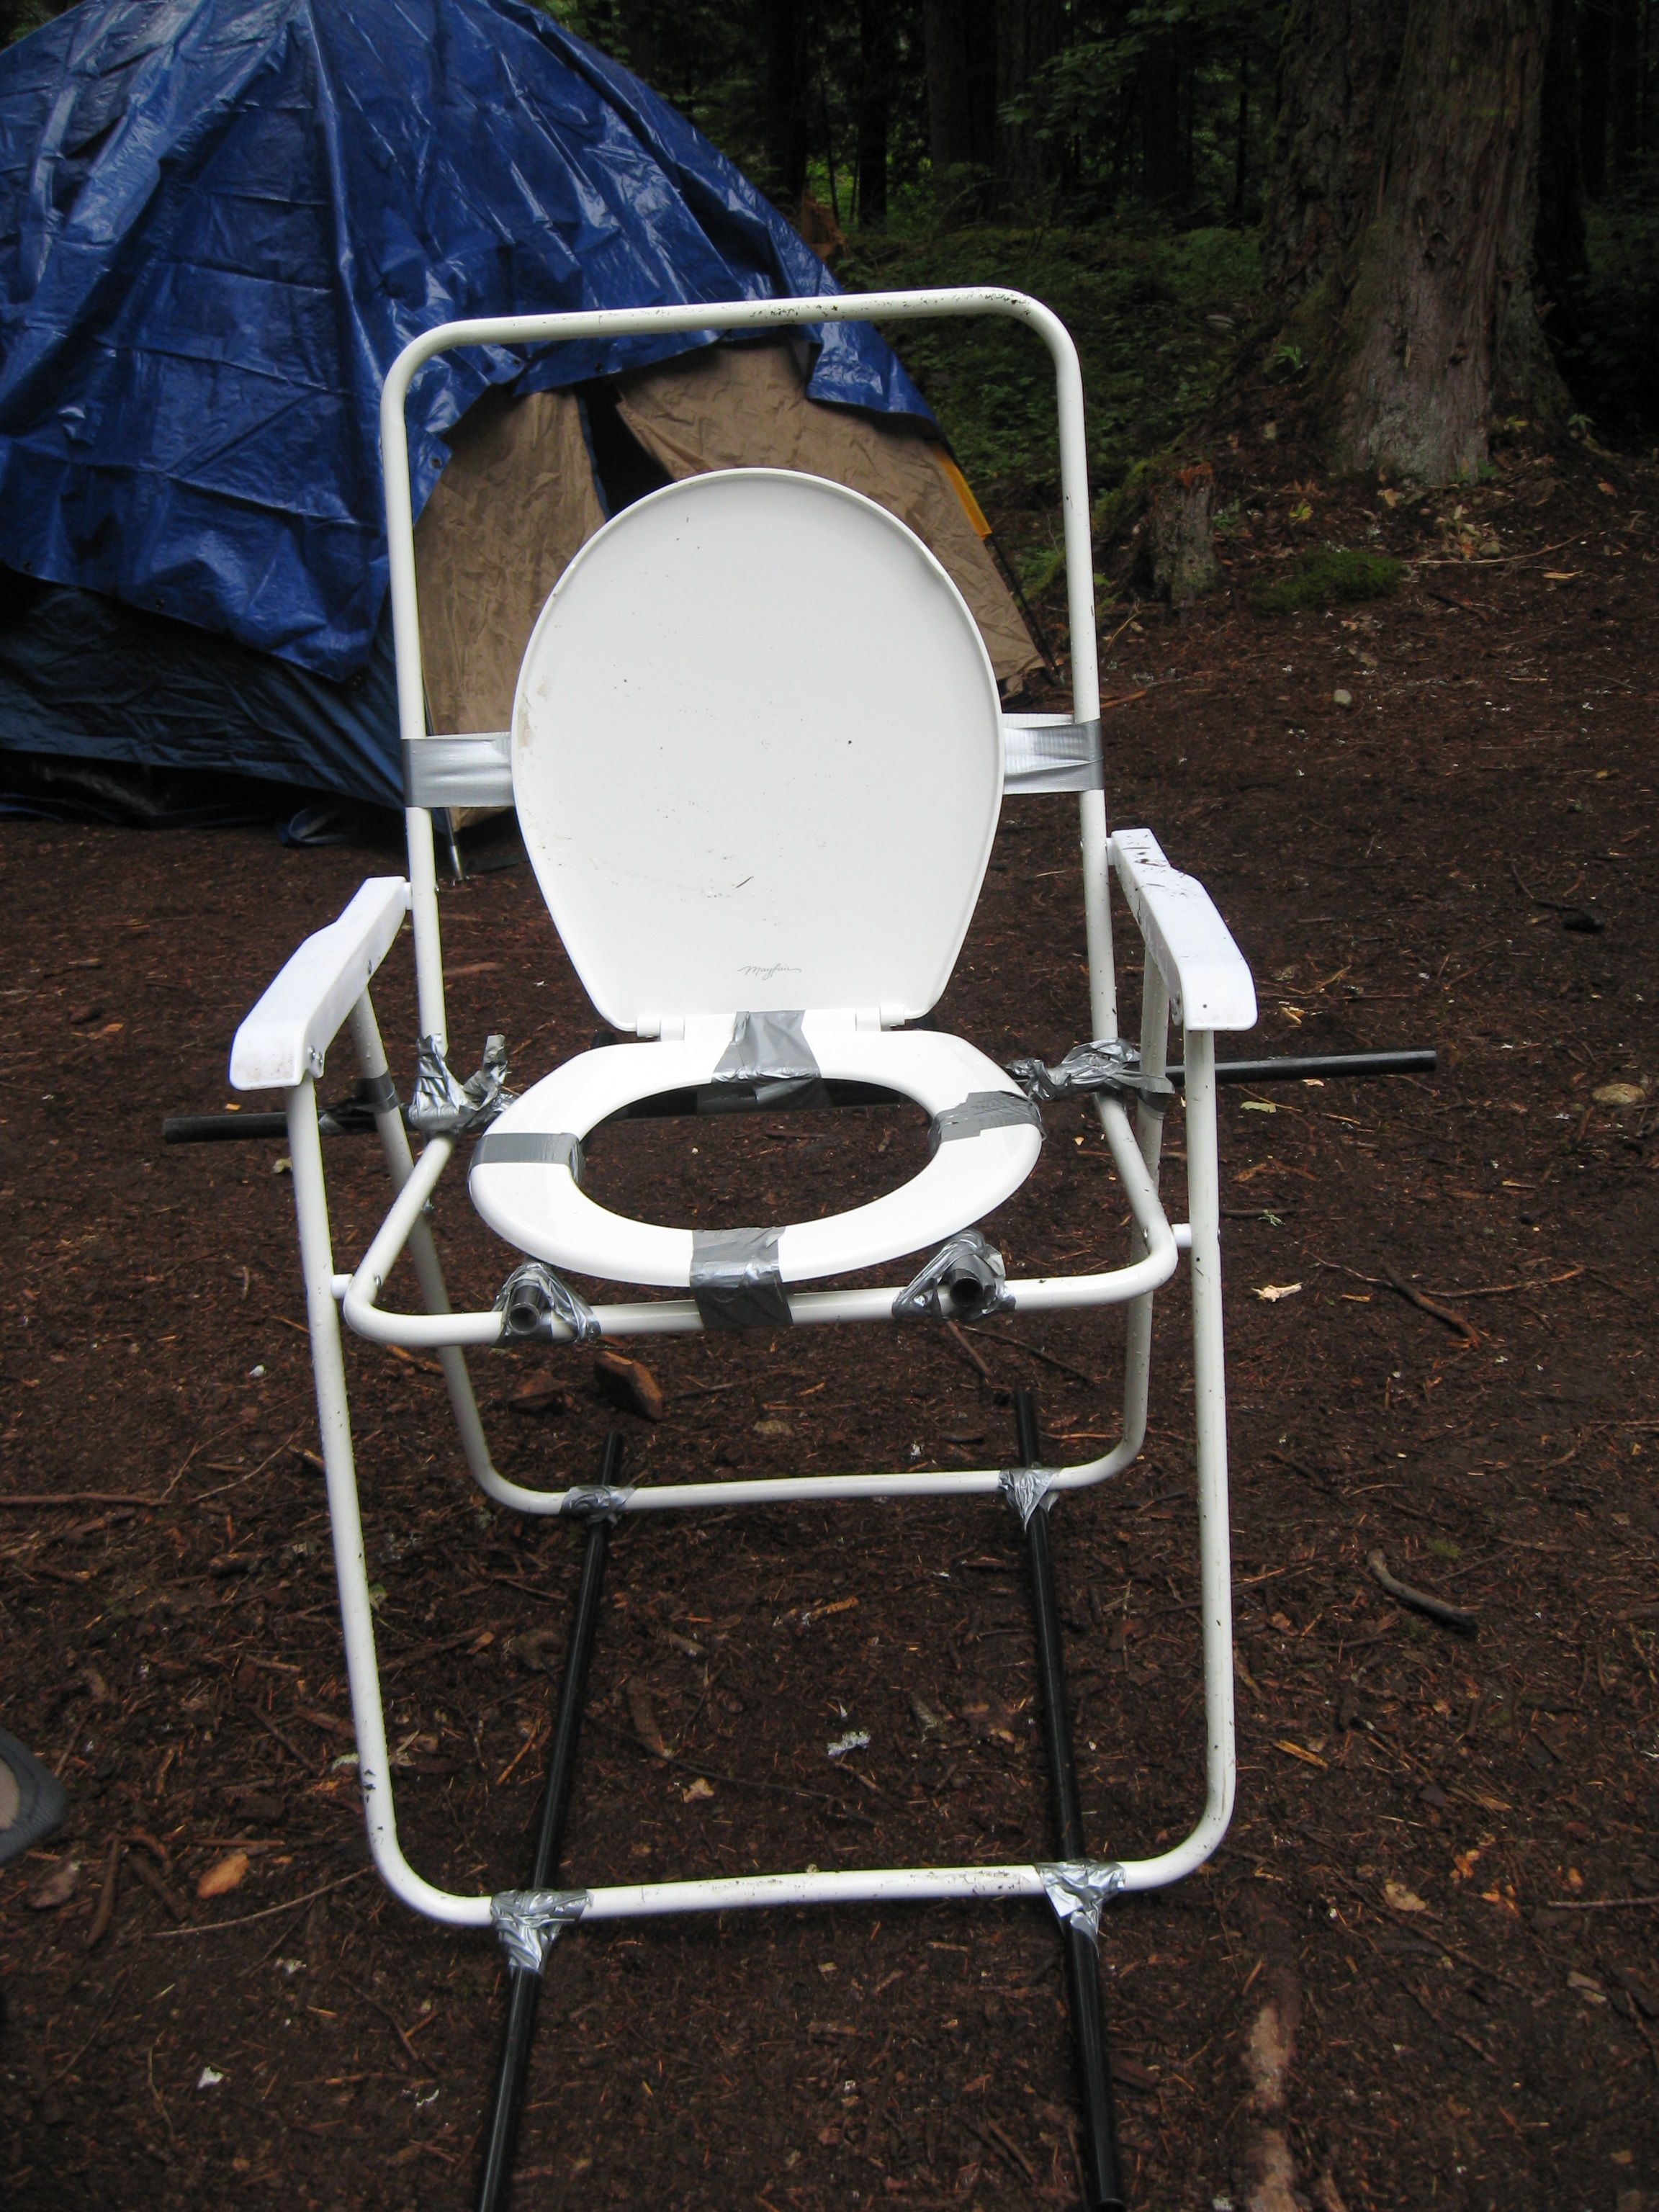 How to Make a Camping Toilet